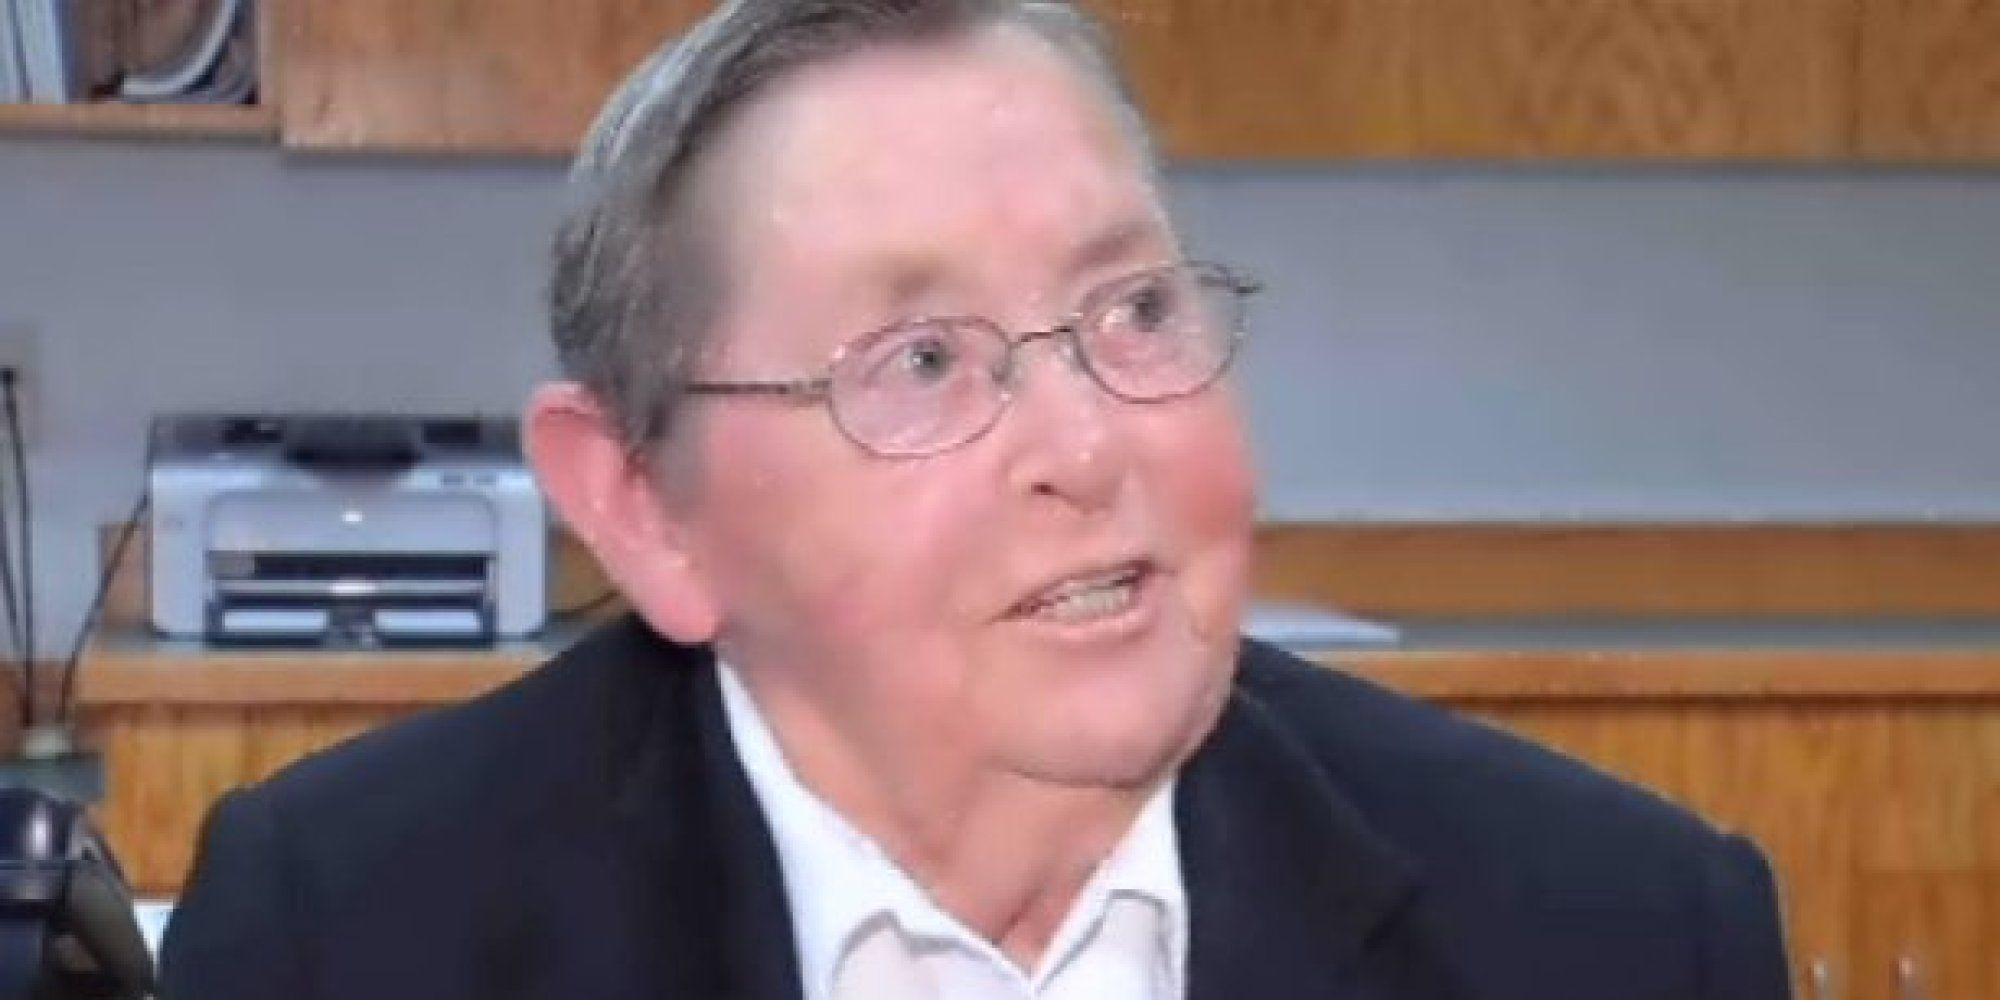 state refuses to let 74-year-old lesbian veteran be buried next to